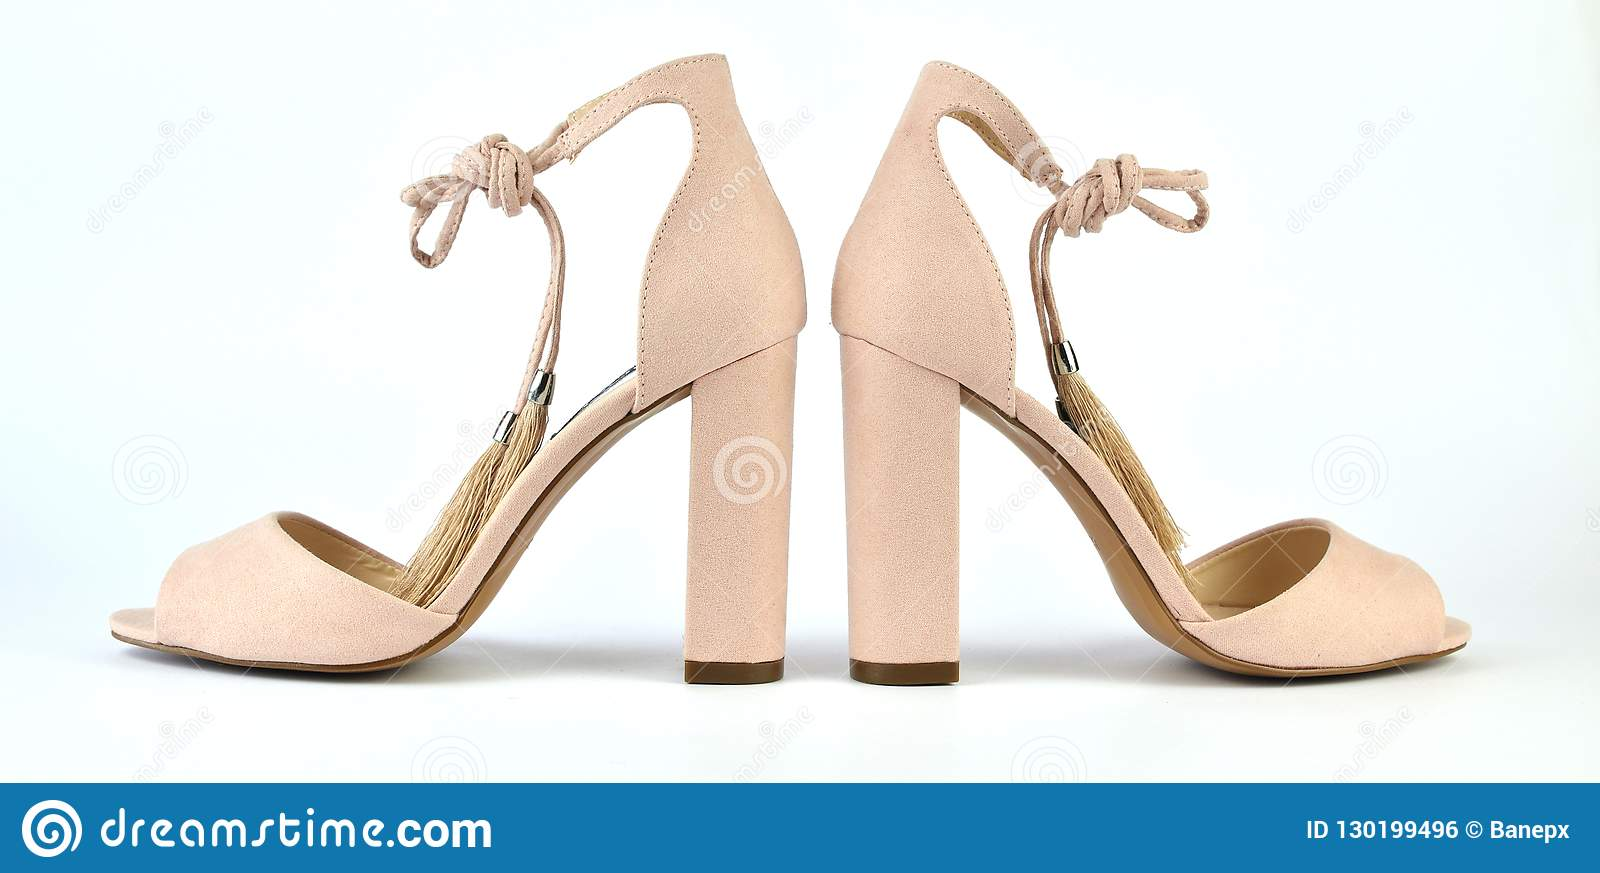 Nude Look Nude Look High-heeled Sandals Stock Photo - Image Of Luxury, Modern: 130199496